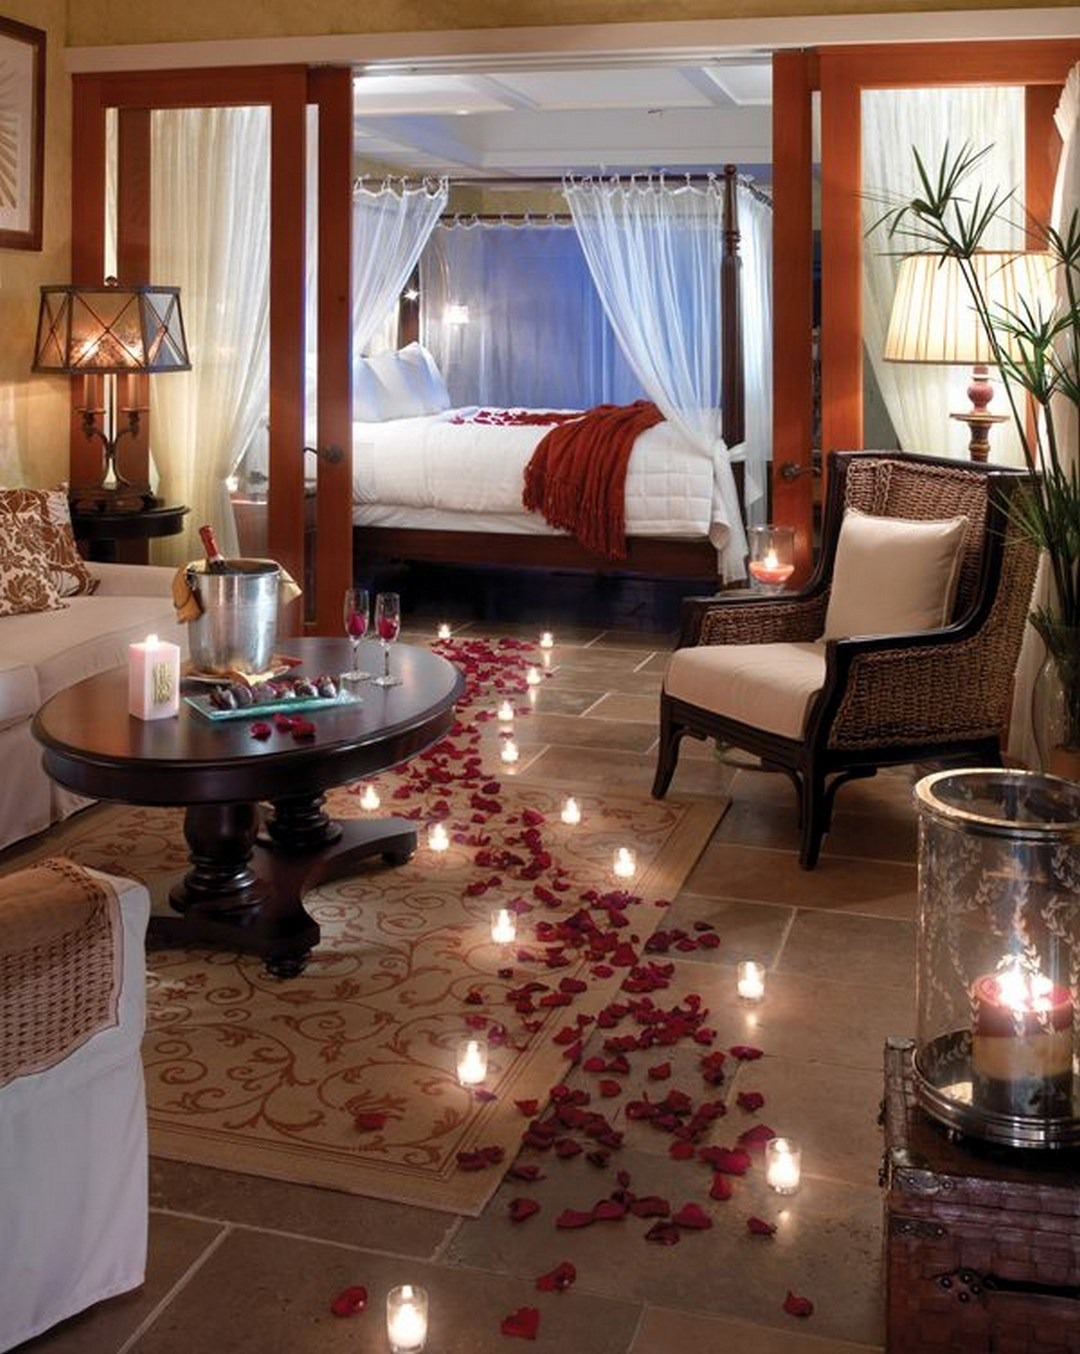 Epic and Romantic Bedroom with Rose Petals